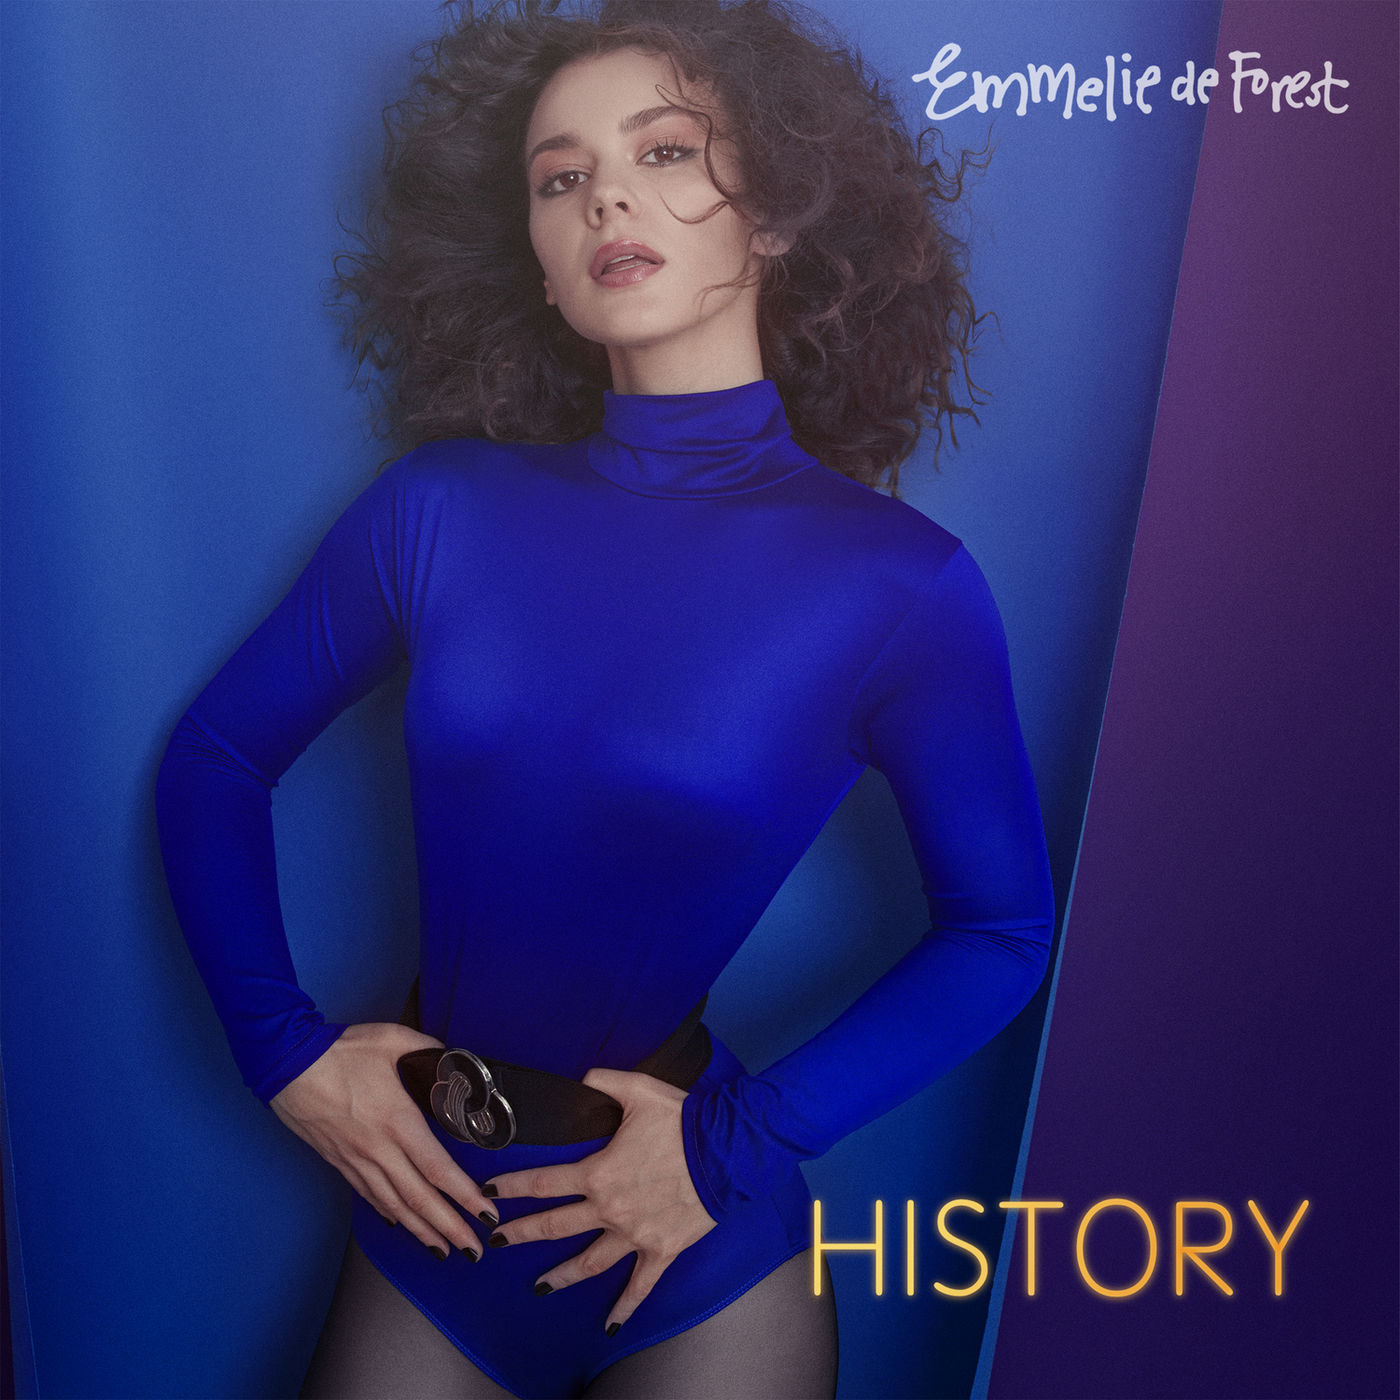 Emmelie-de-forest-history-ep-cover